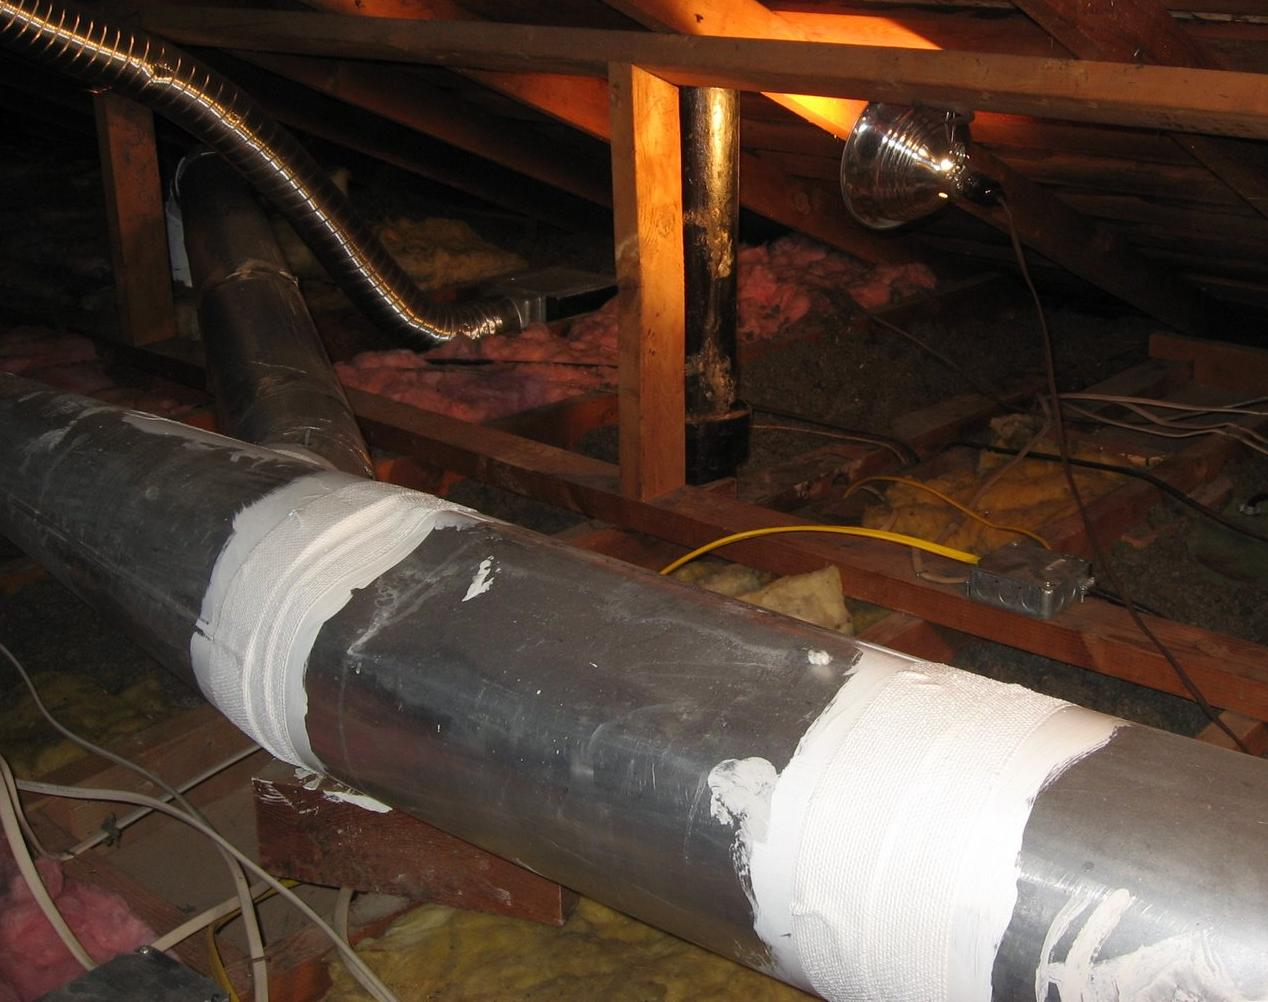 #C79404 Duct Sealing – Stetten Home Services Best 6333 Sealing Air Ducts From The Inside photos with 1268x1002 px on helpvideos.info - Air Conditioners, Air Coolers and more